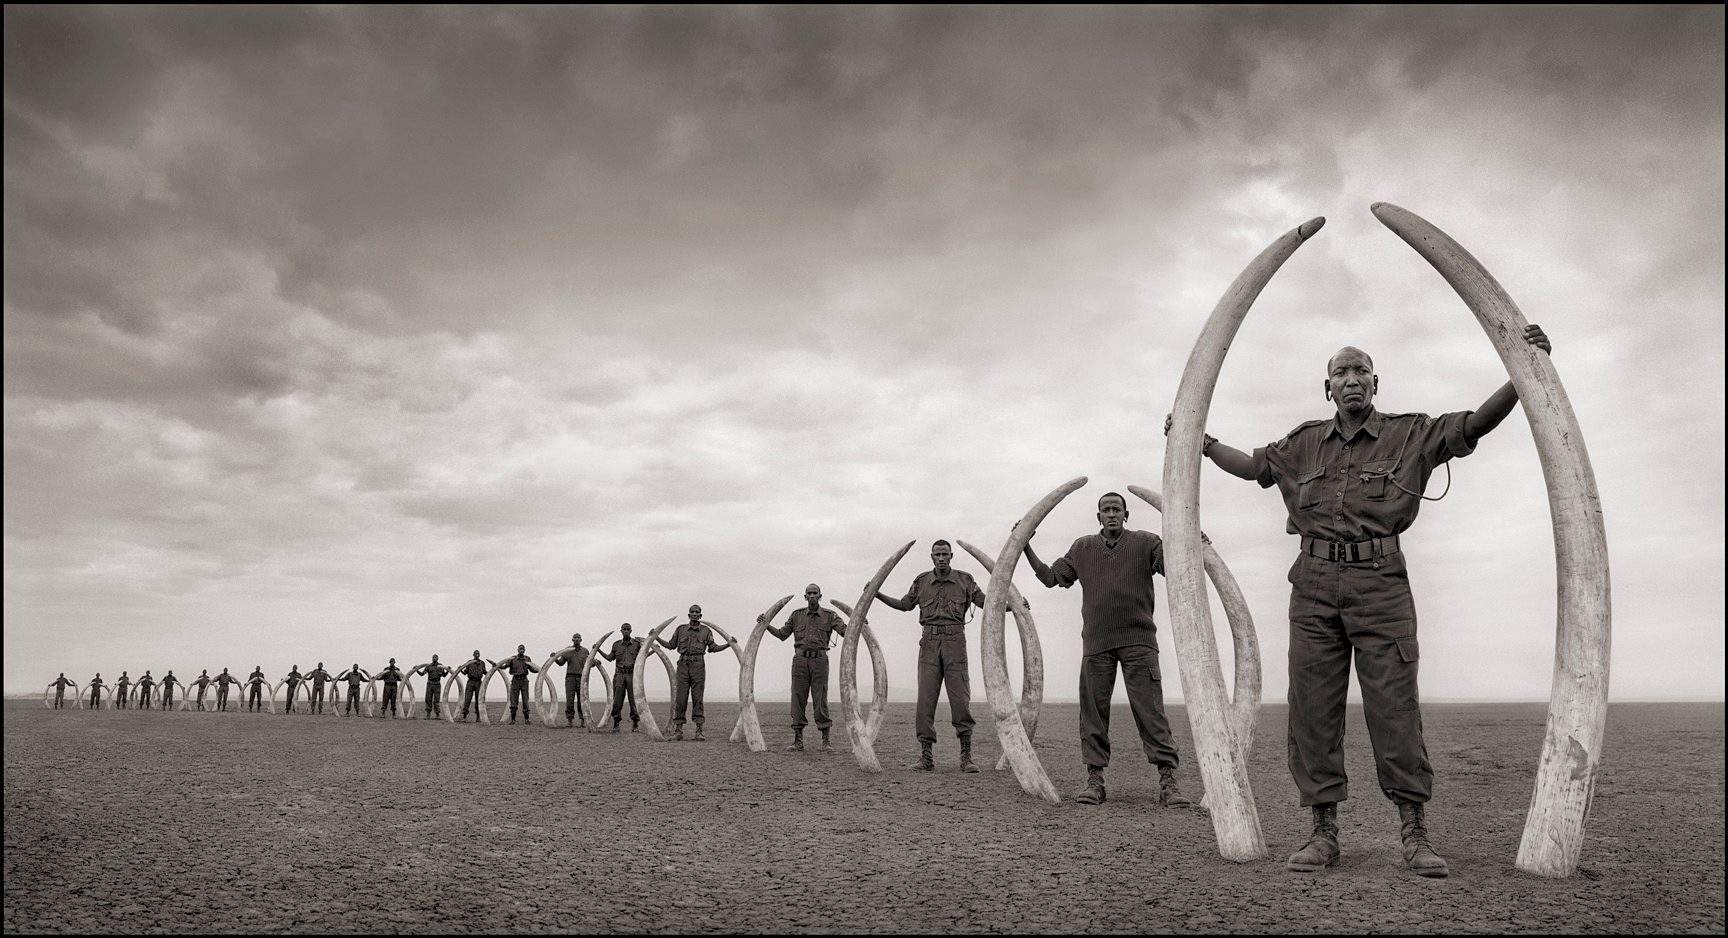 Line of Rangers with Tusks of Killed Elephants, Amboseli